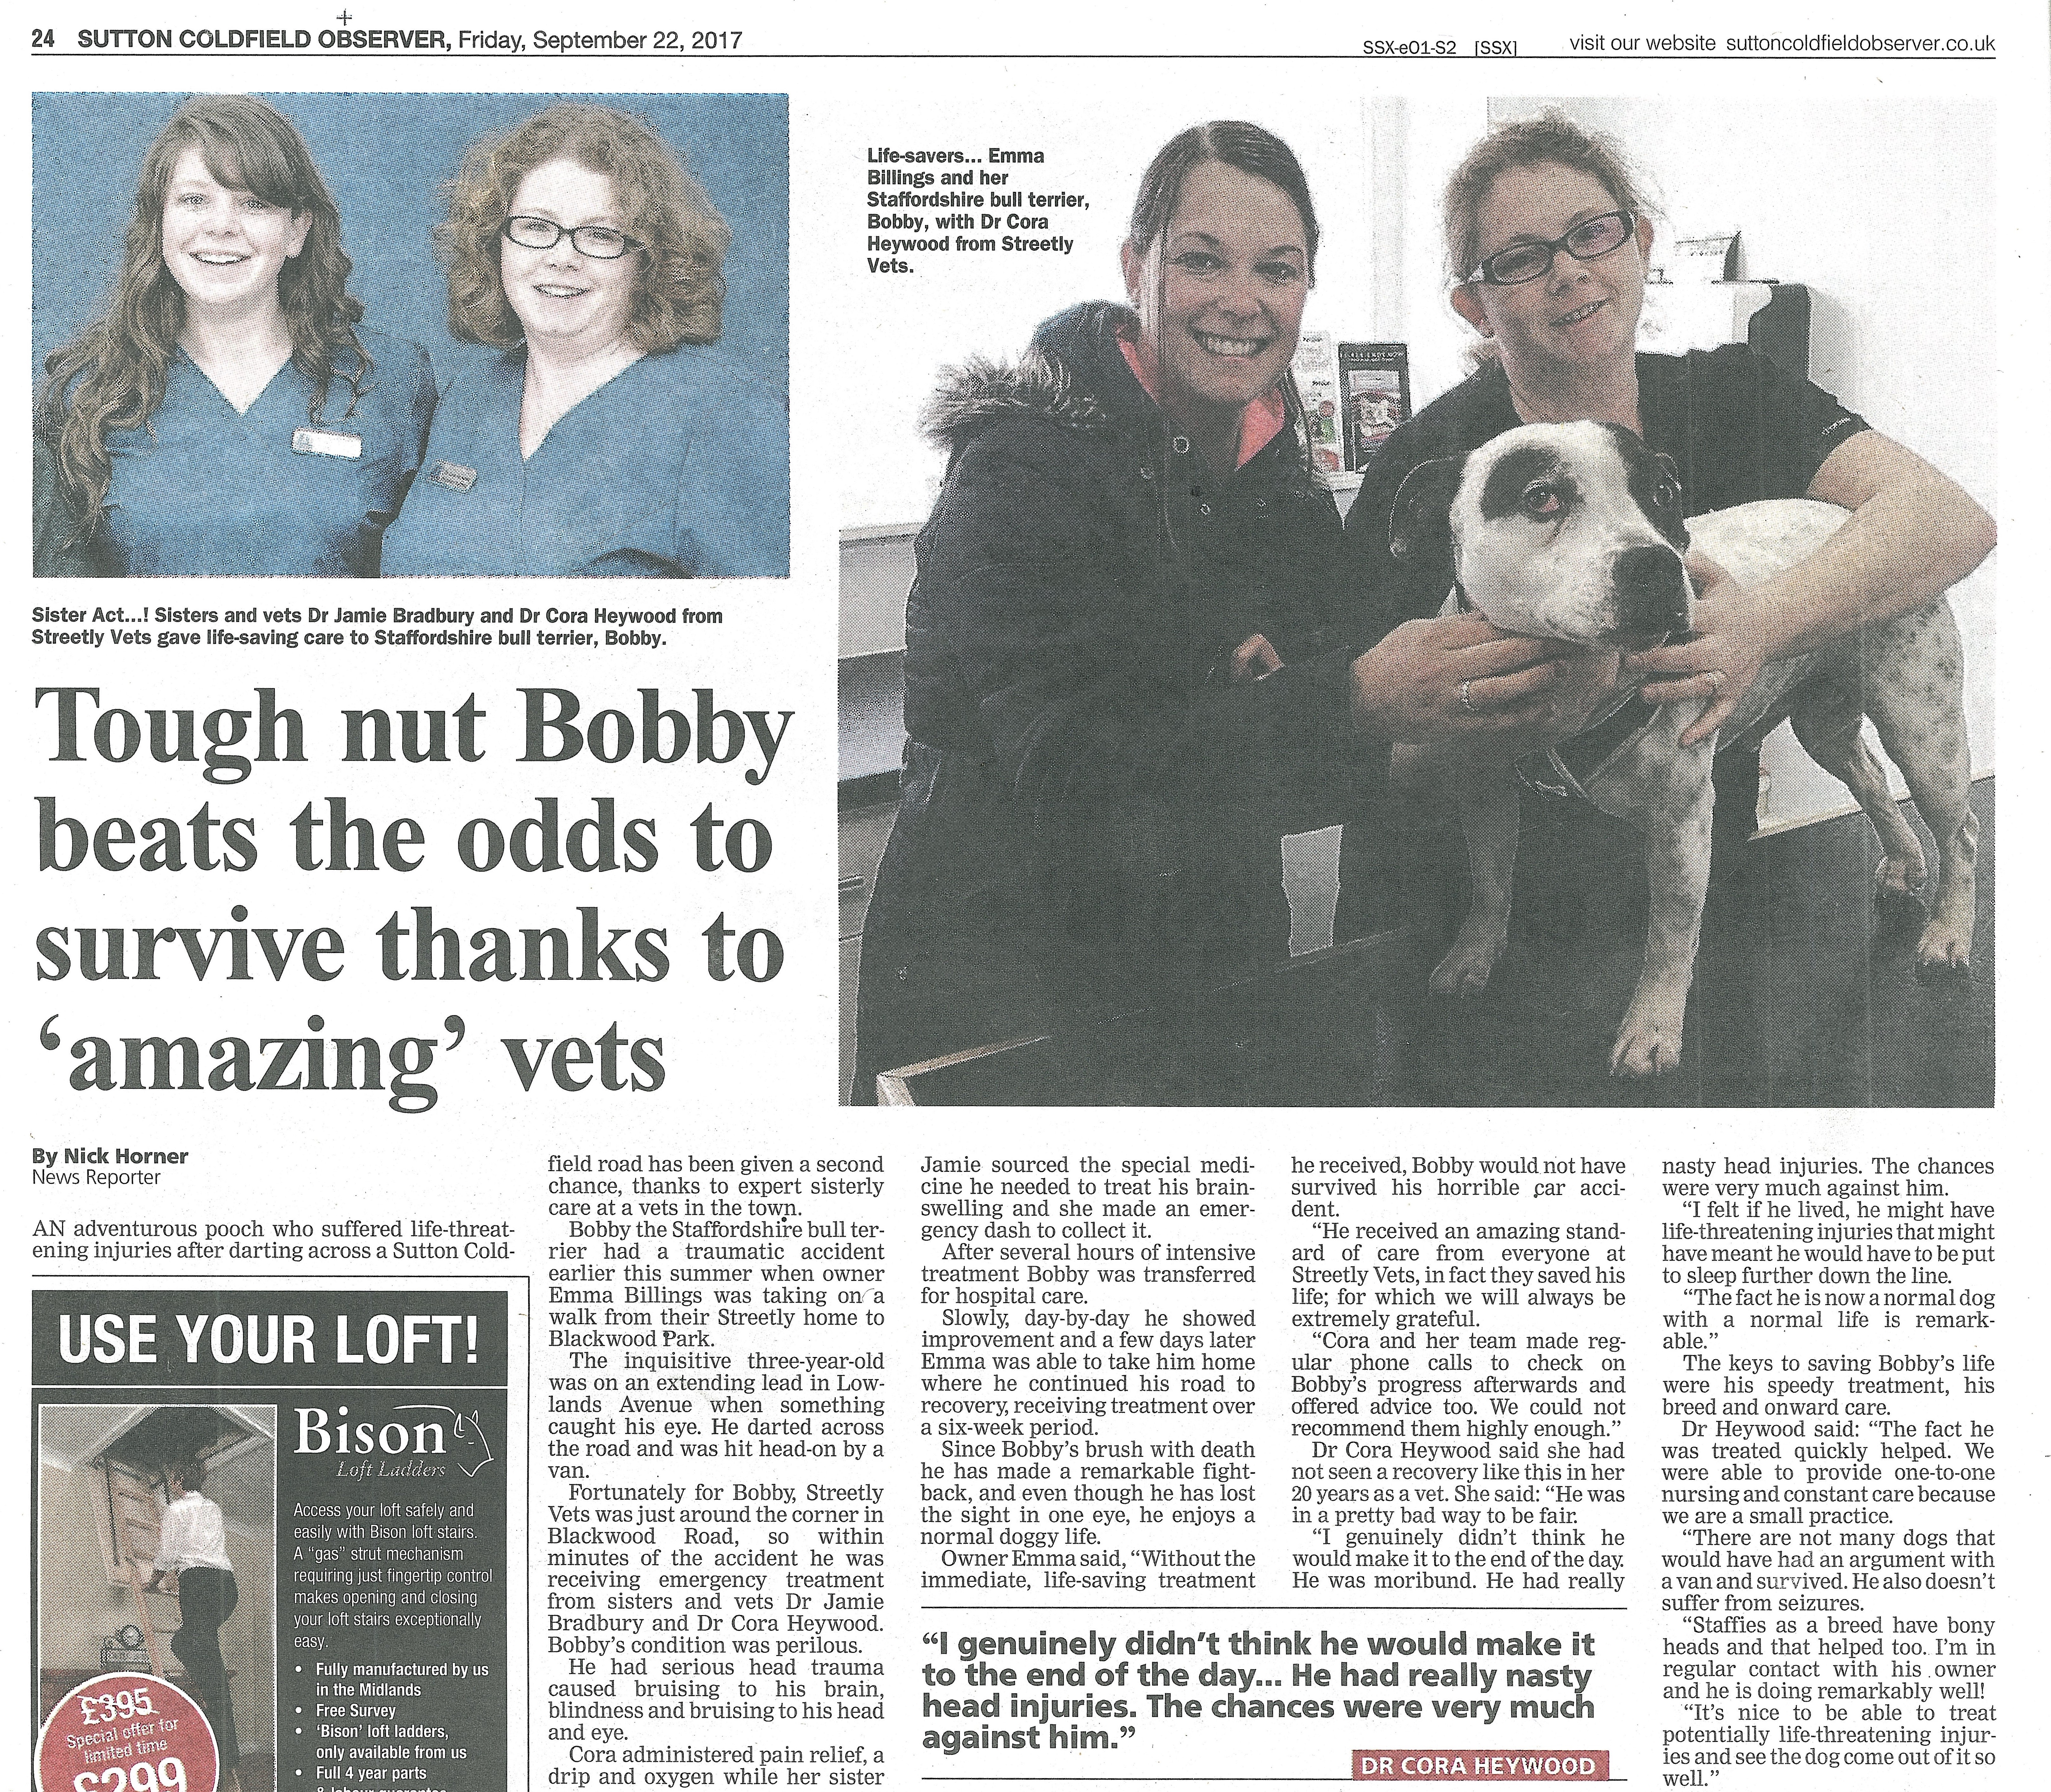 Sutton Coldfield Observer headline about Bobby the Staffordshire Bull Terrier